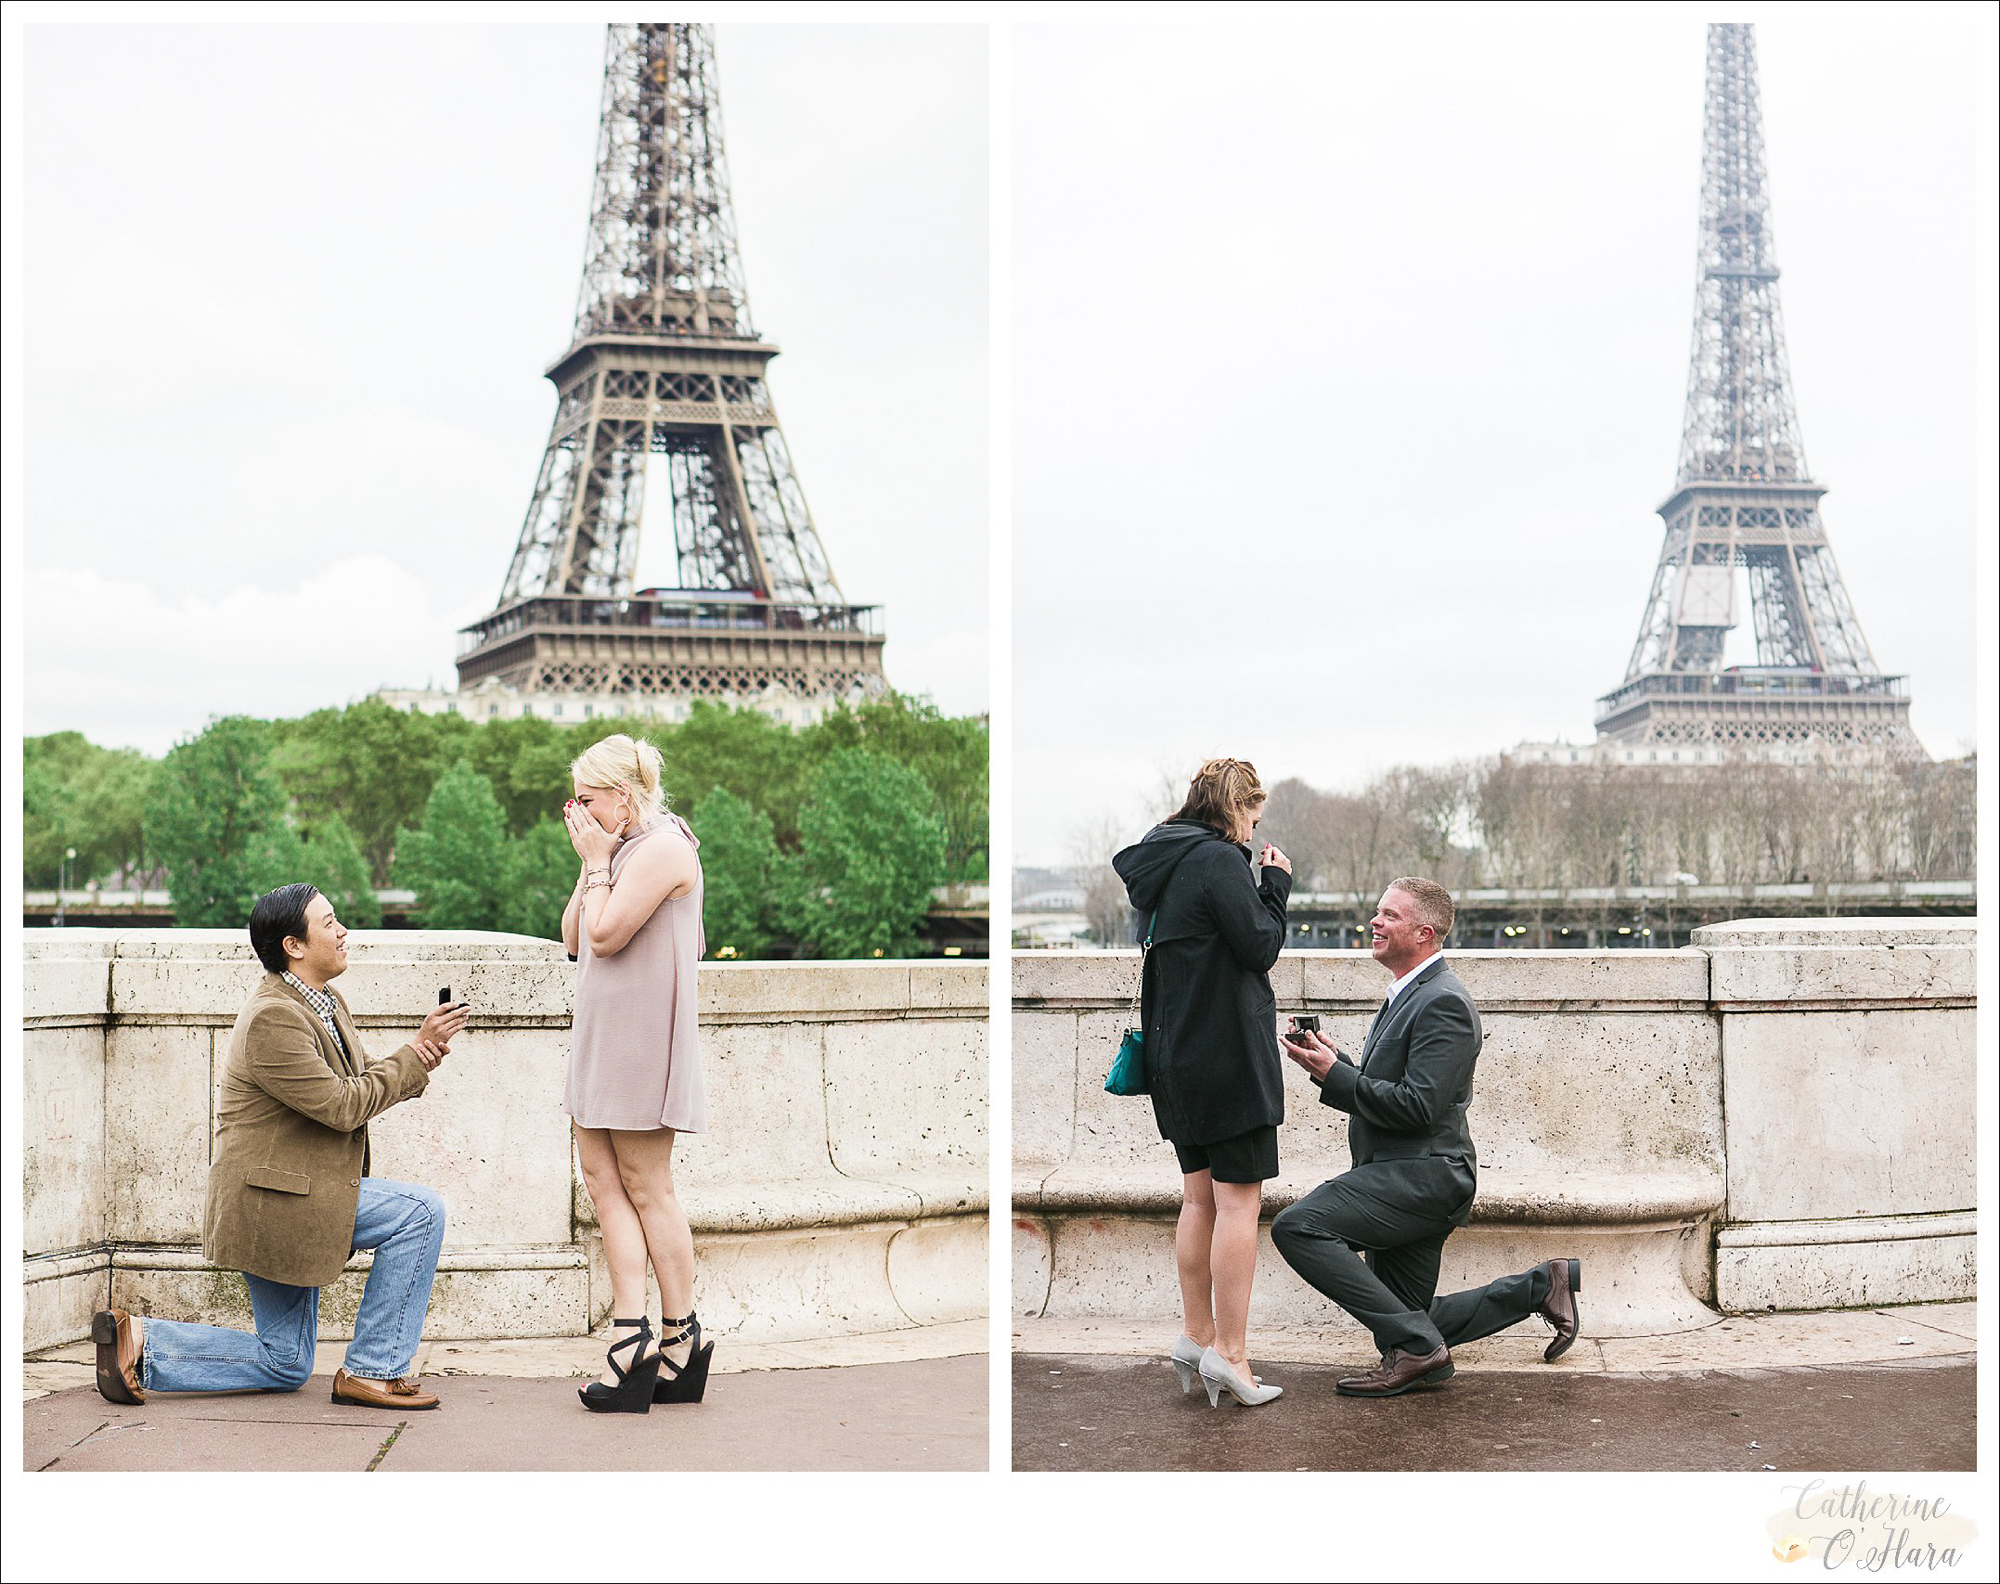 surprise proposal engagement photographer paris france-01.jpg